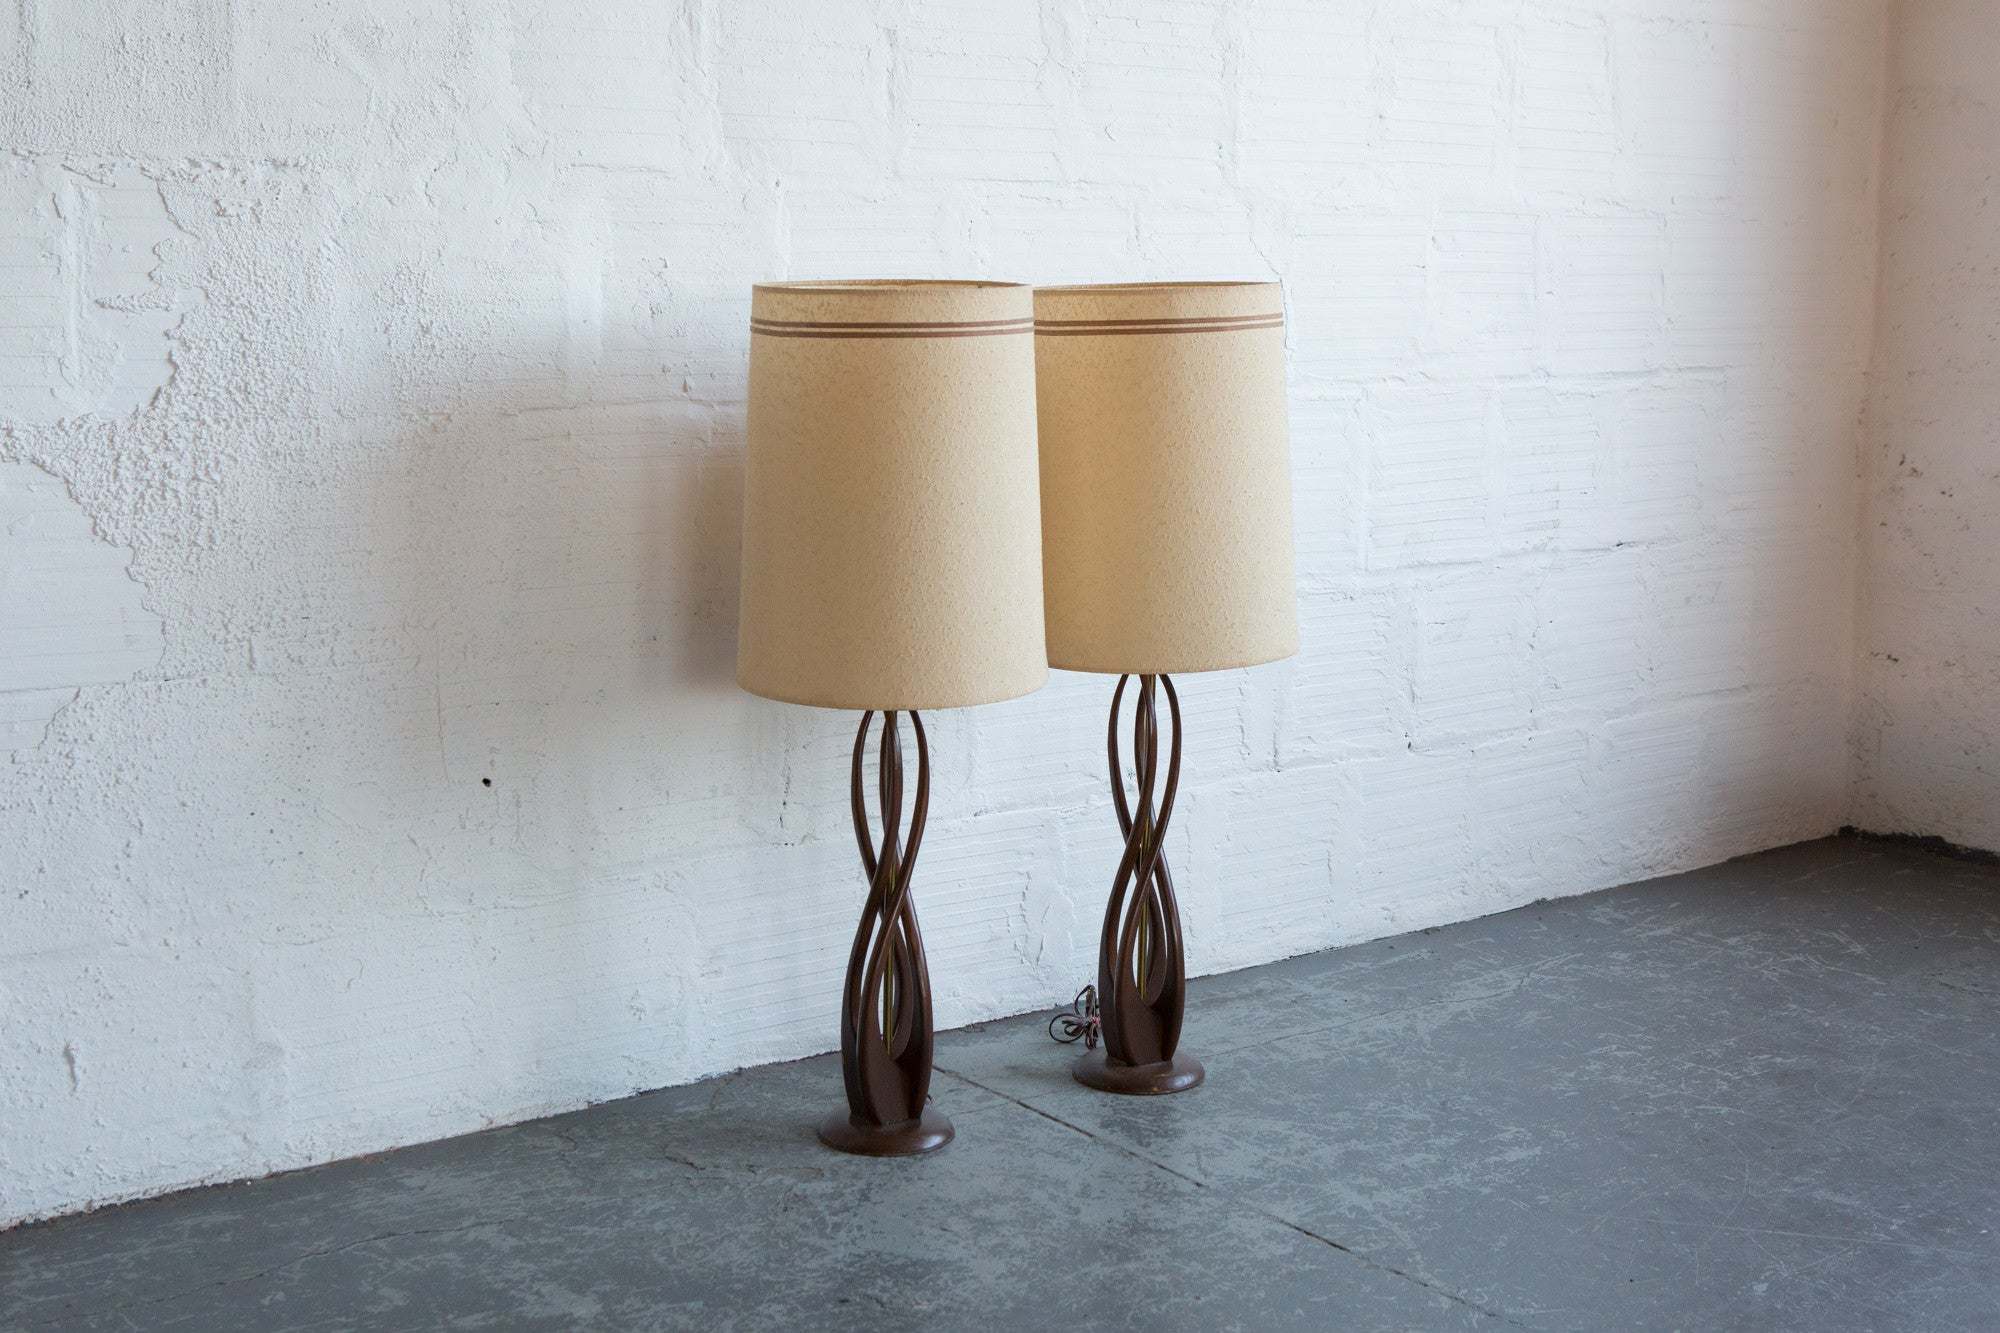 Mcm carved wood table lamp set of 2 the good mod mcm carved wood table lamp set of 2 geotapseo Choice Image